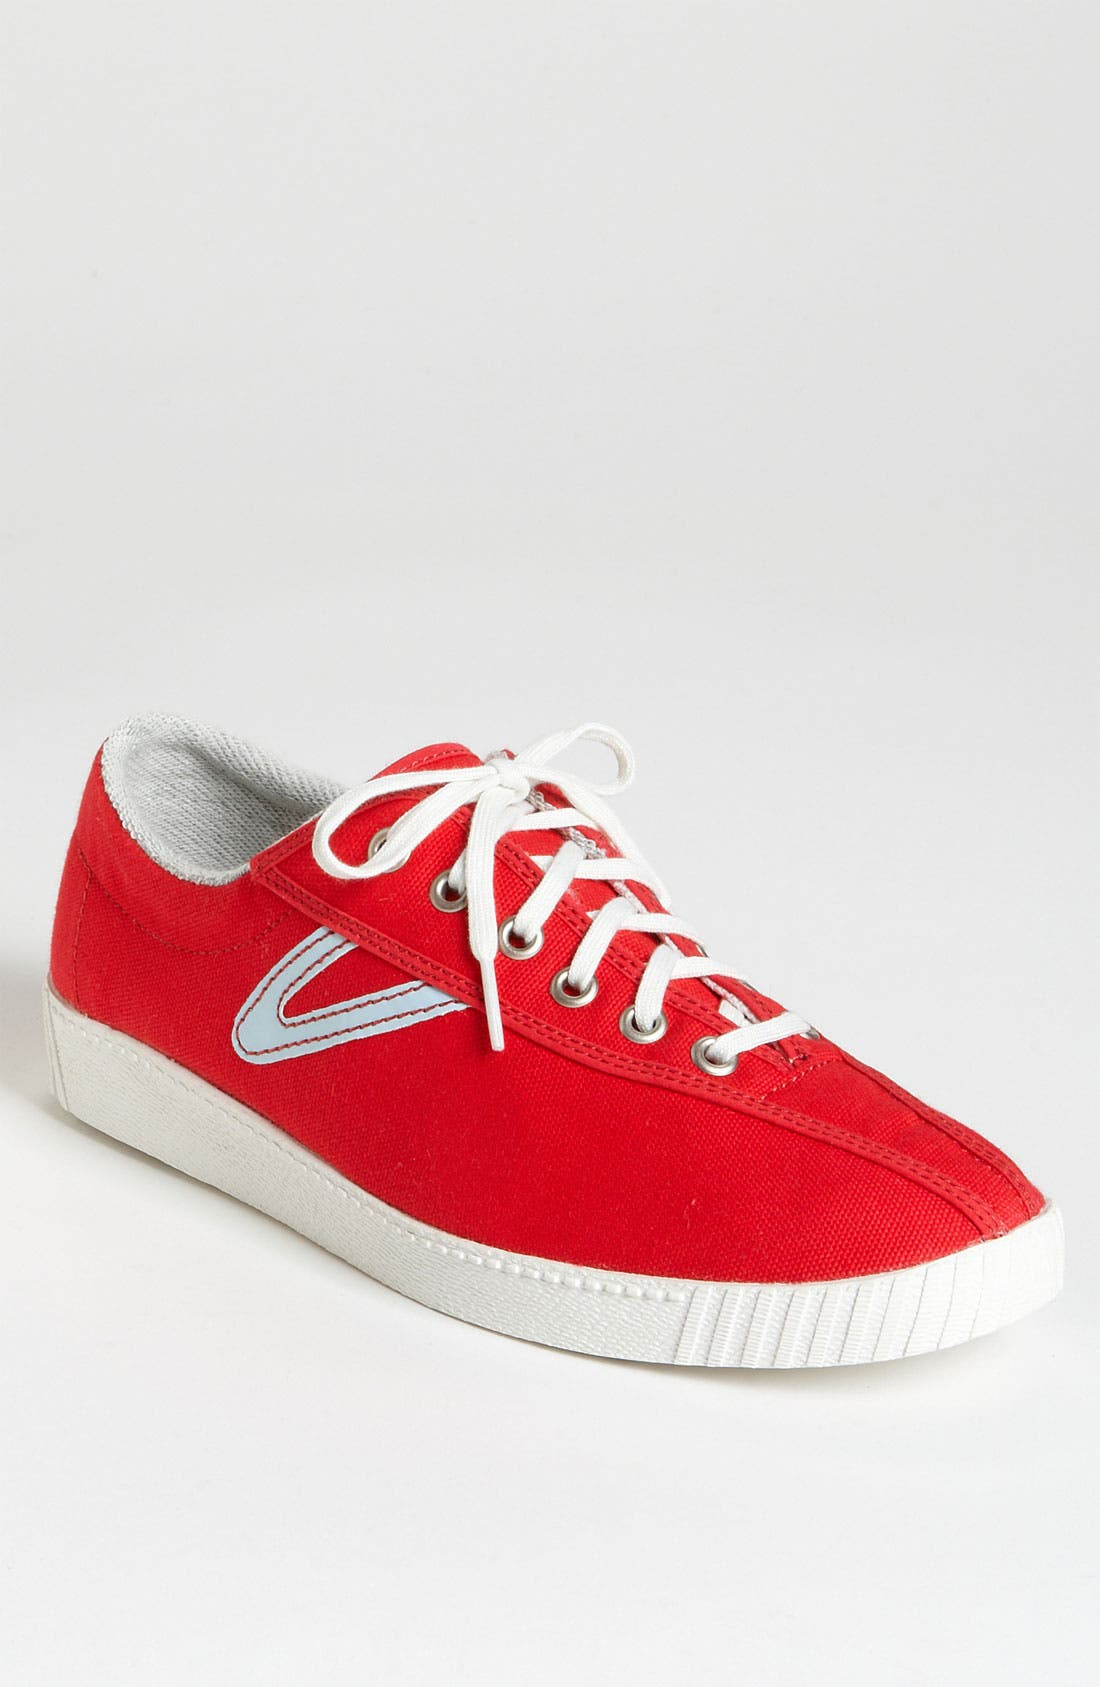 Alternate Image 1 Selected - Tretorn 'Nylite' Sneaker